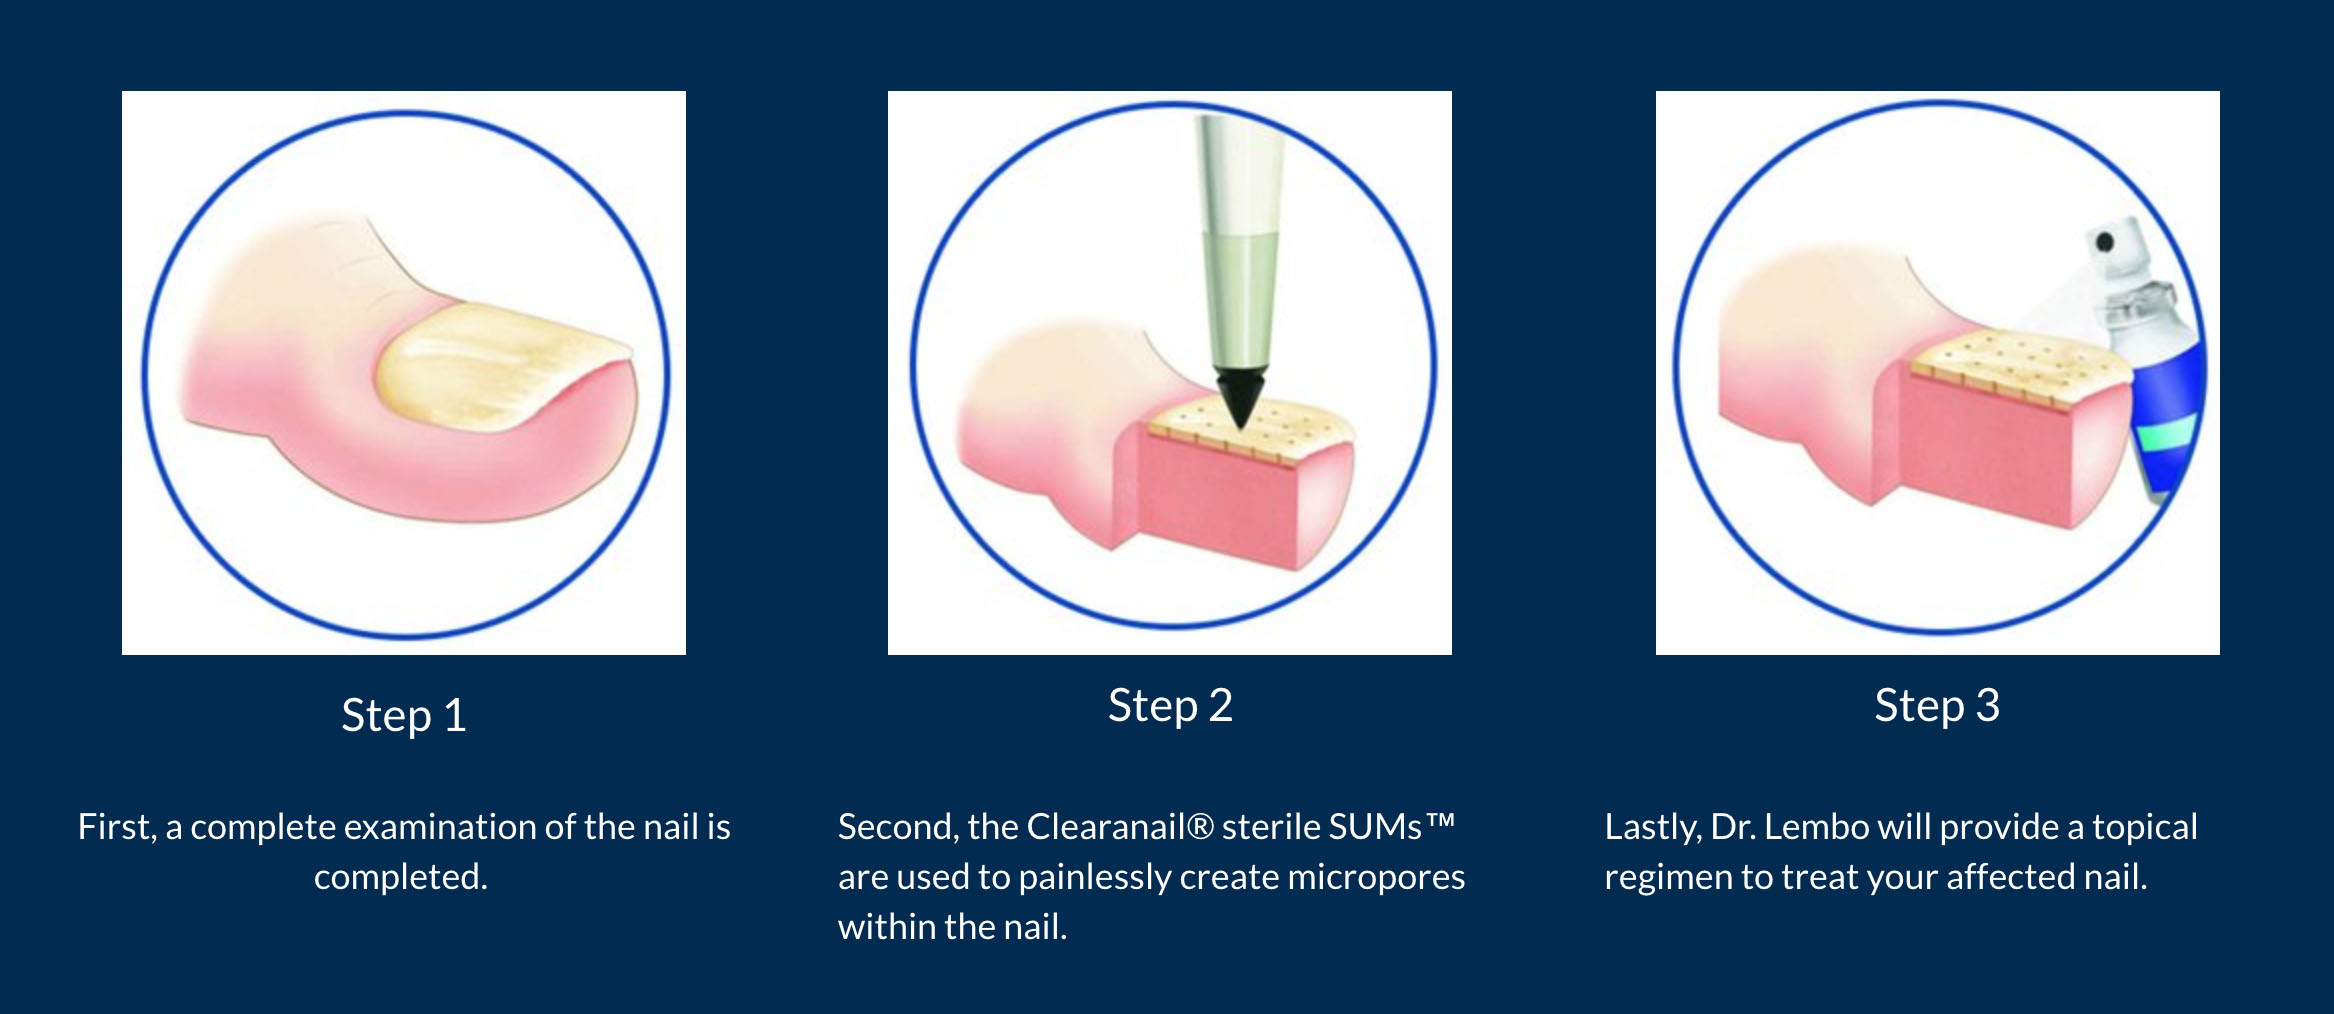 Clearanail® Nail Treatment - Midlothian, VA: Adult & Child